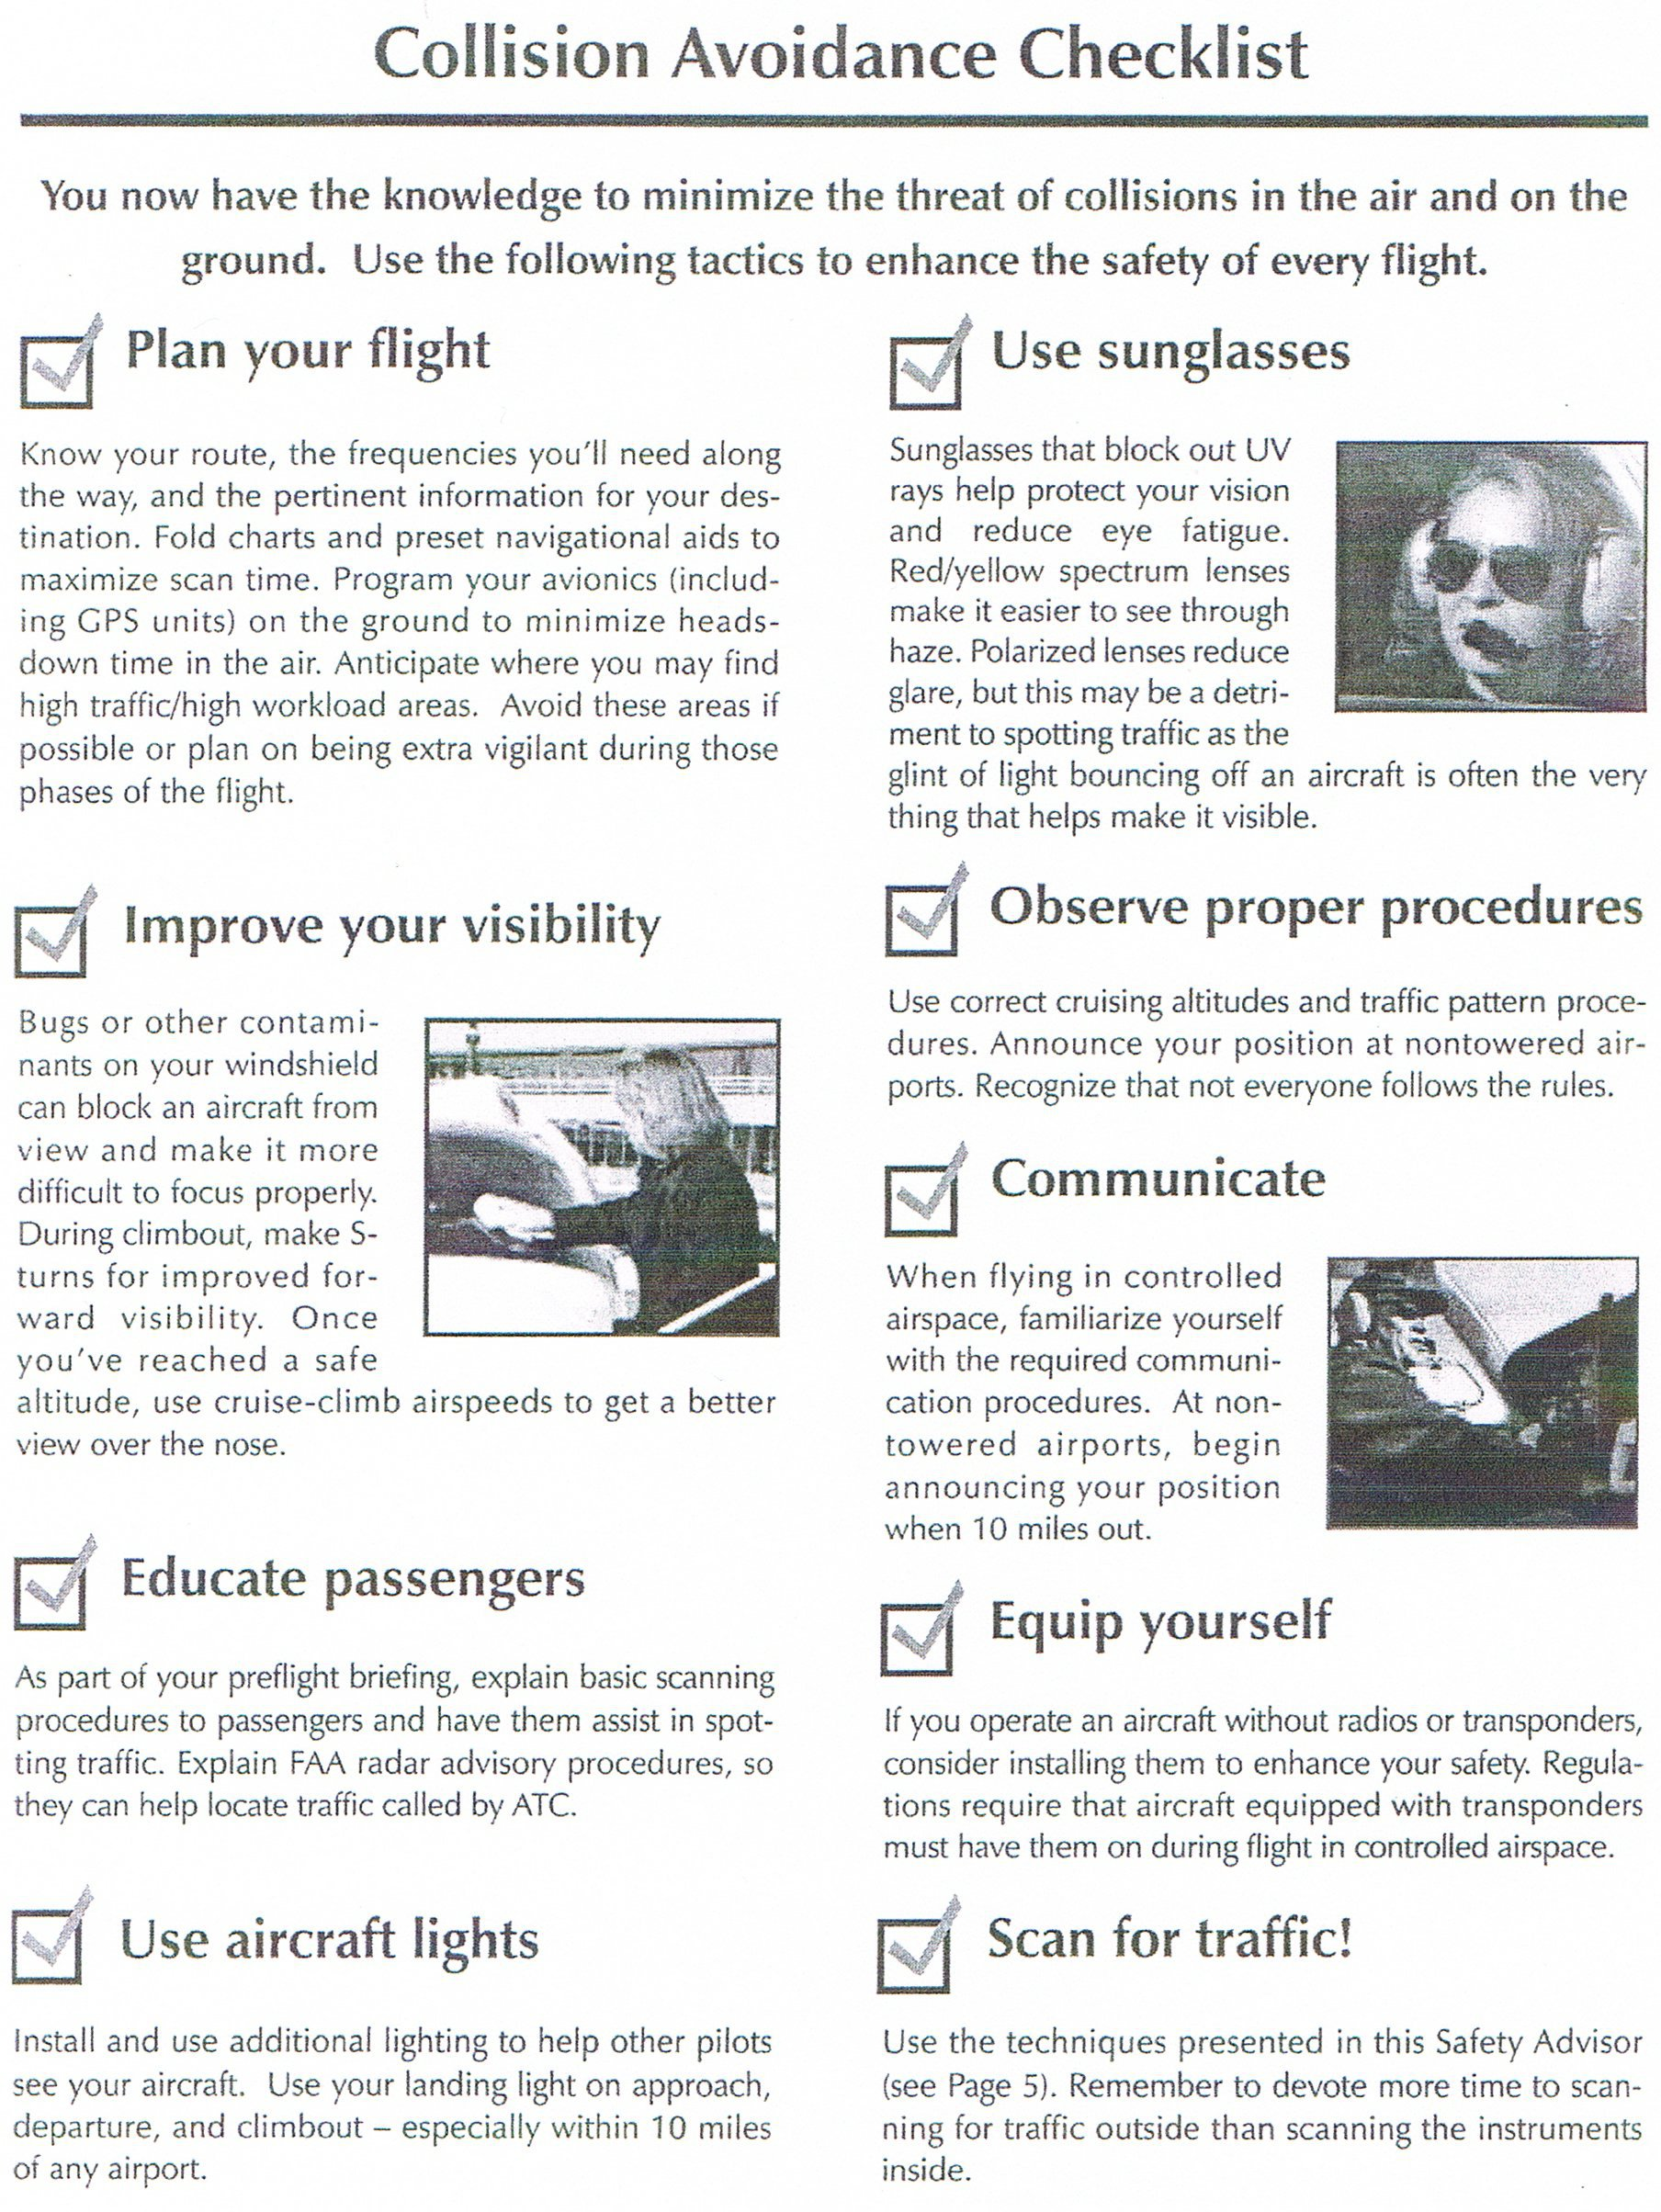 Collision Avoidance Checklist